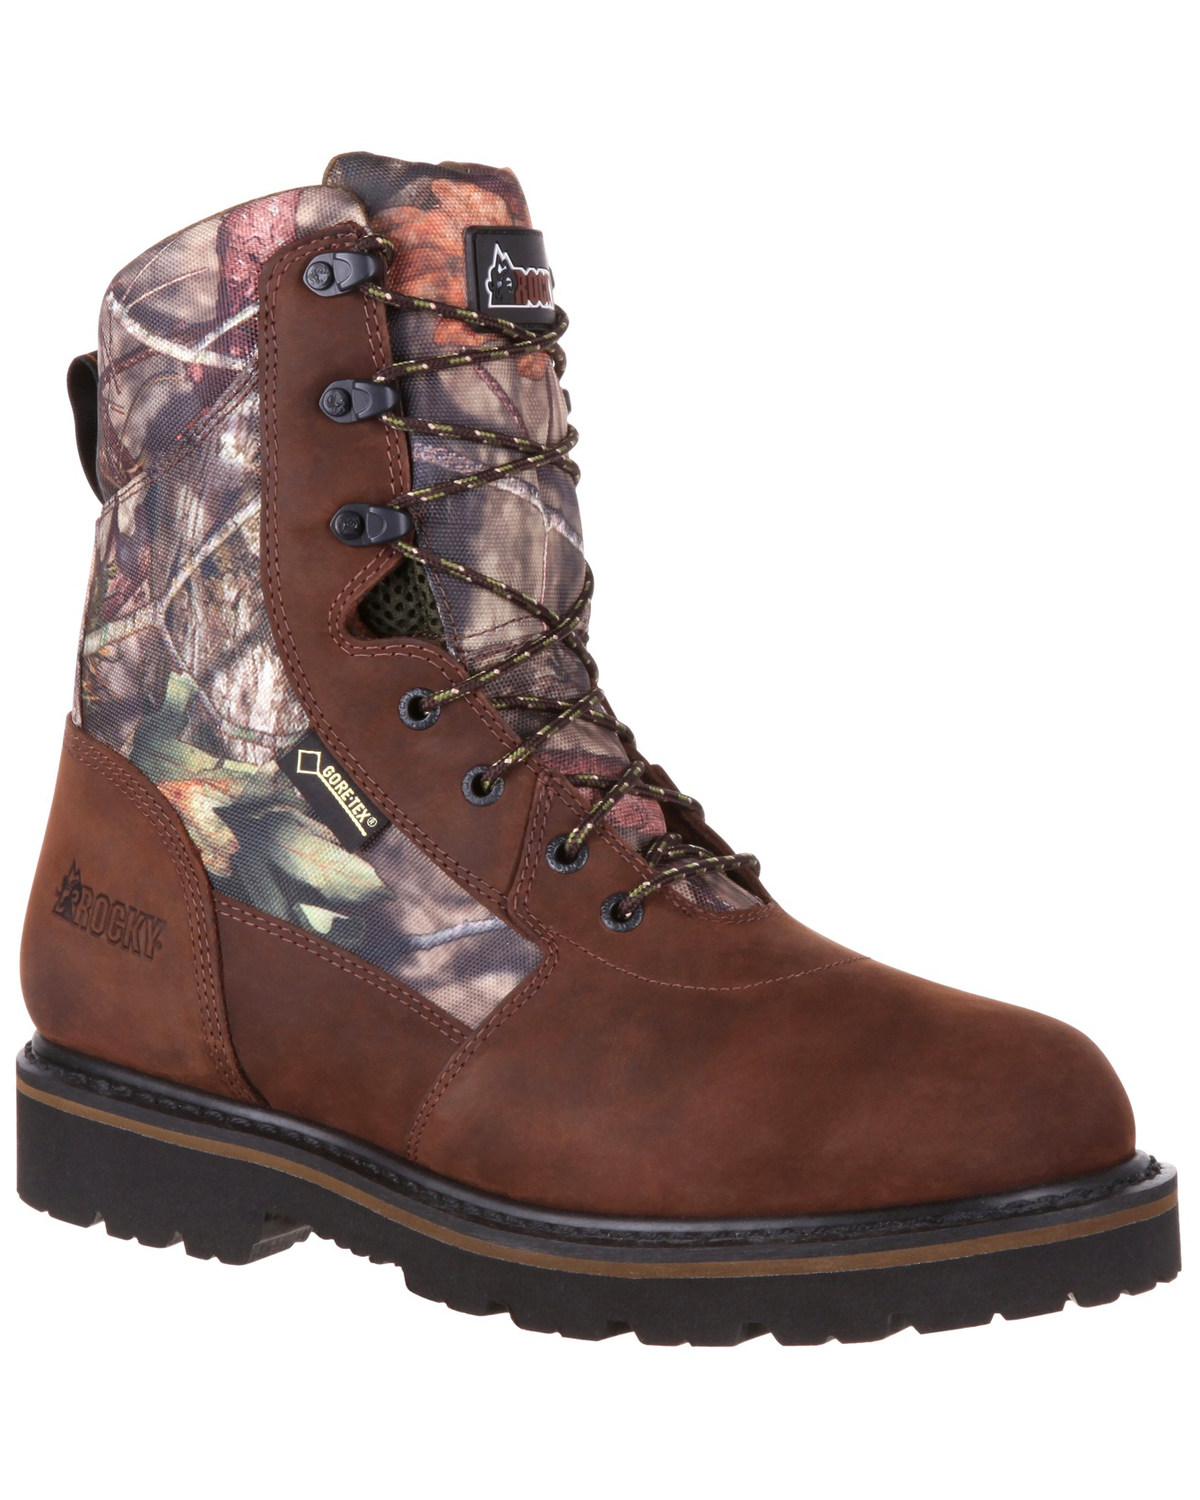 c11abc13f07 Rocky Men's Stalker Waterproof Hunting Boots - Round Toe